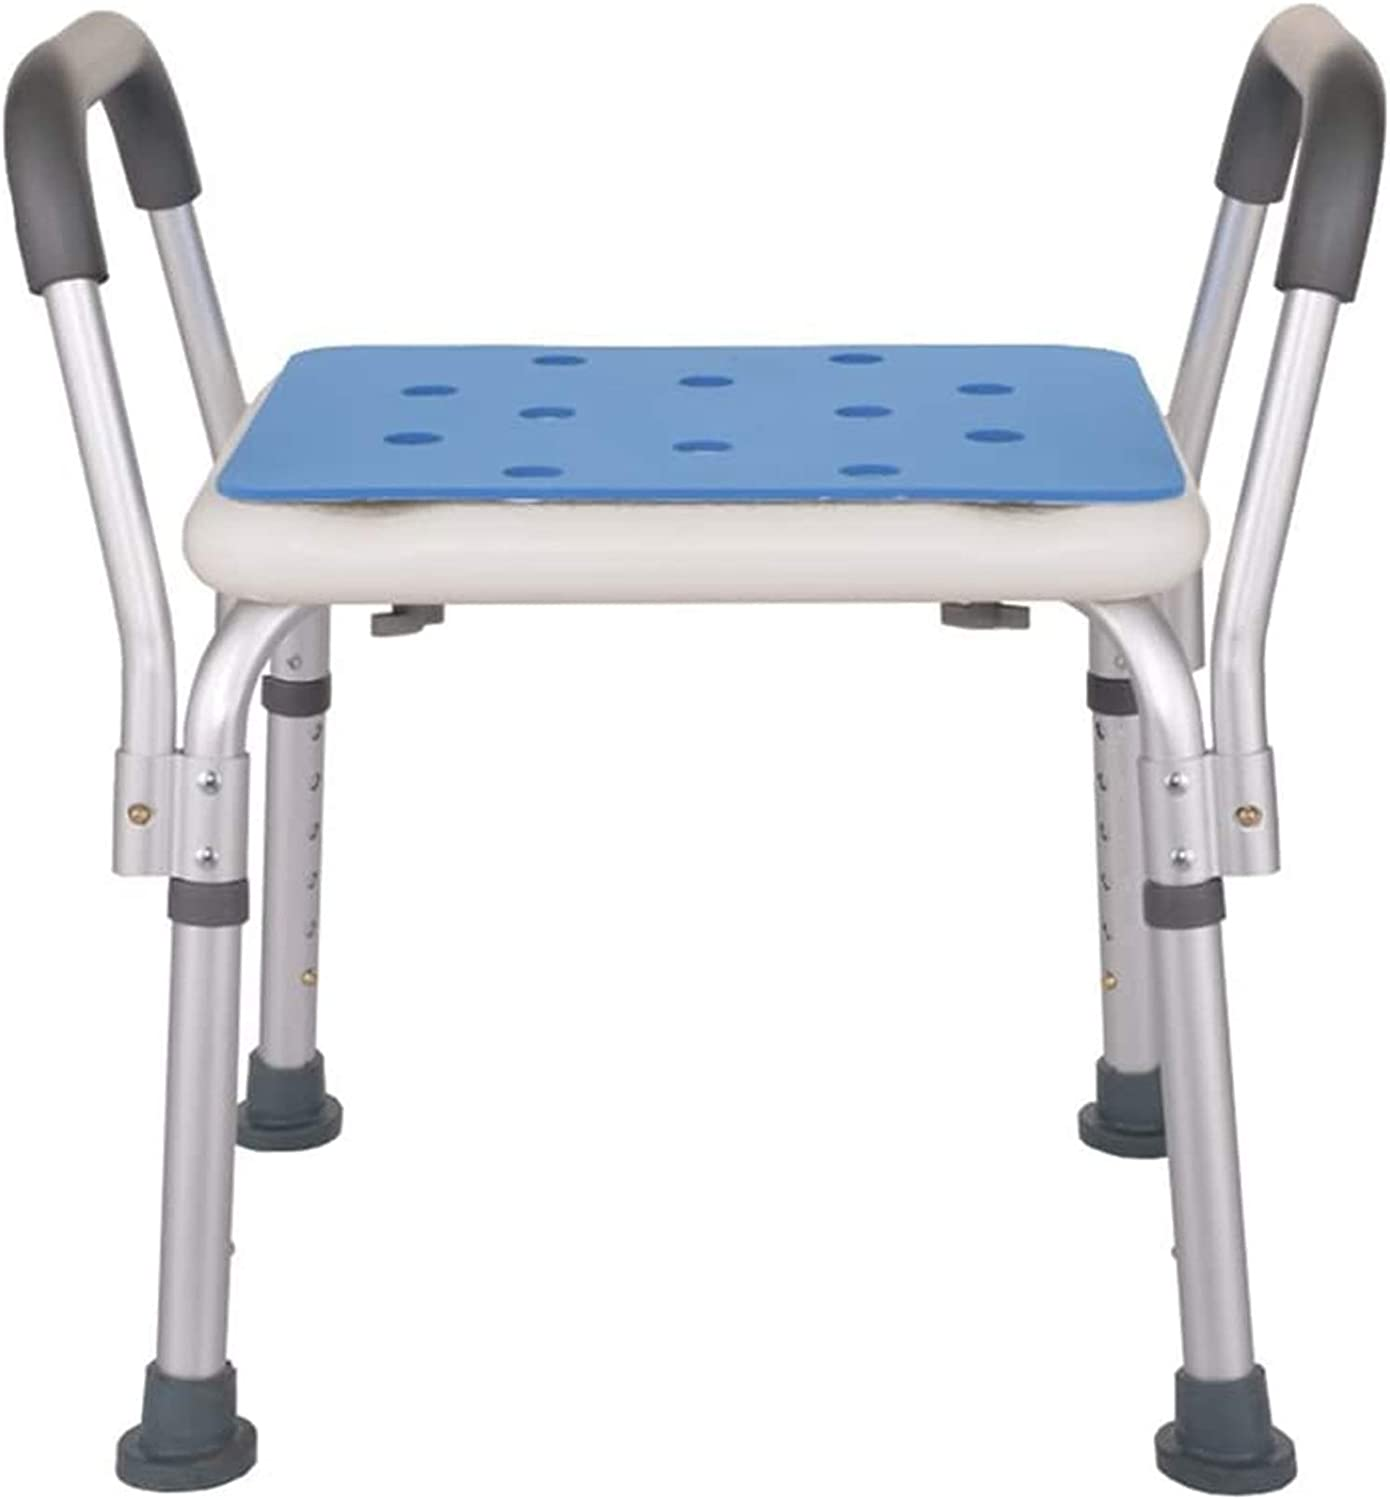 Medical Limited time cheap sale Padded Seat Transfer Las Vegas Mall Bench Shower Stool Alloy Aluminum